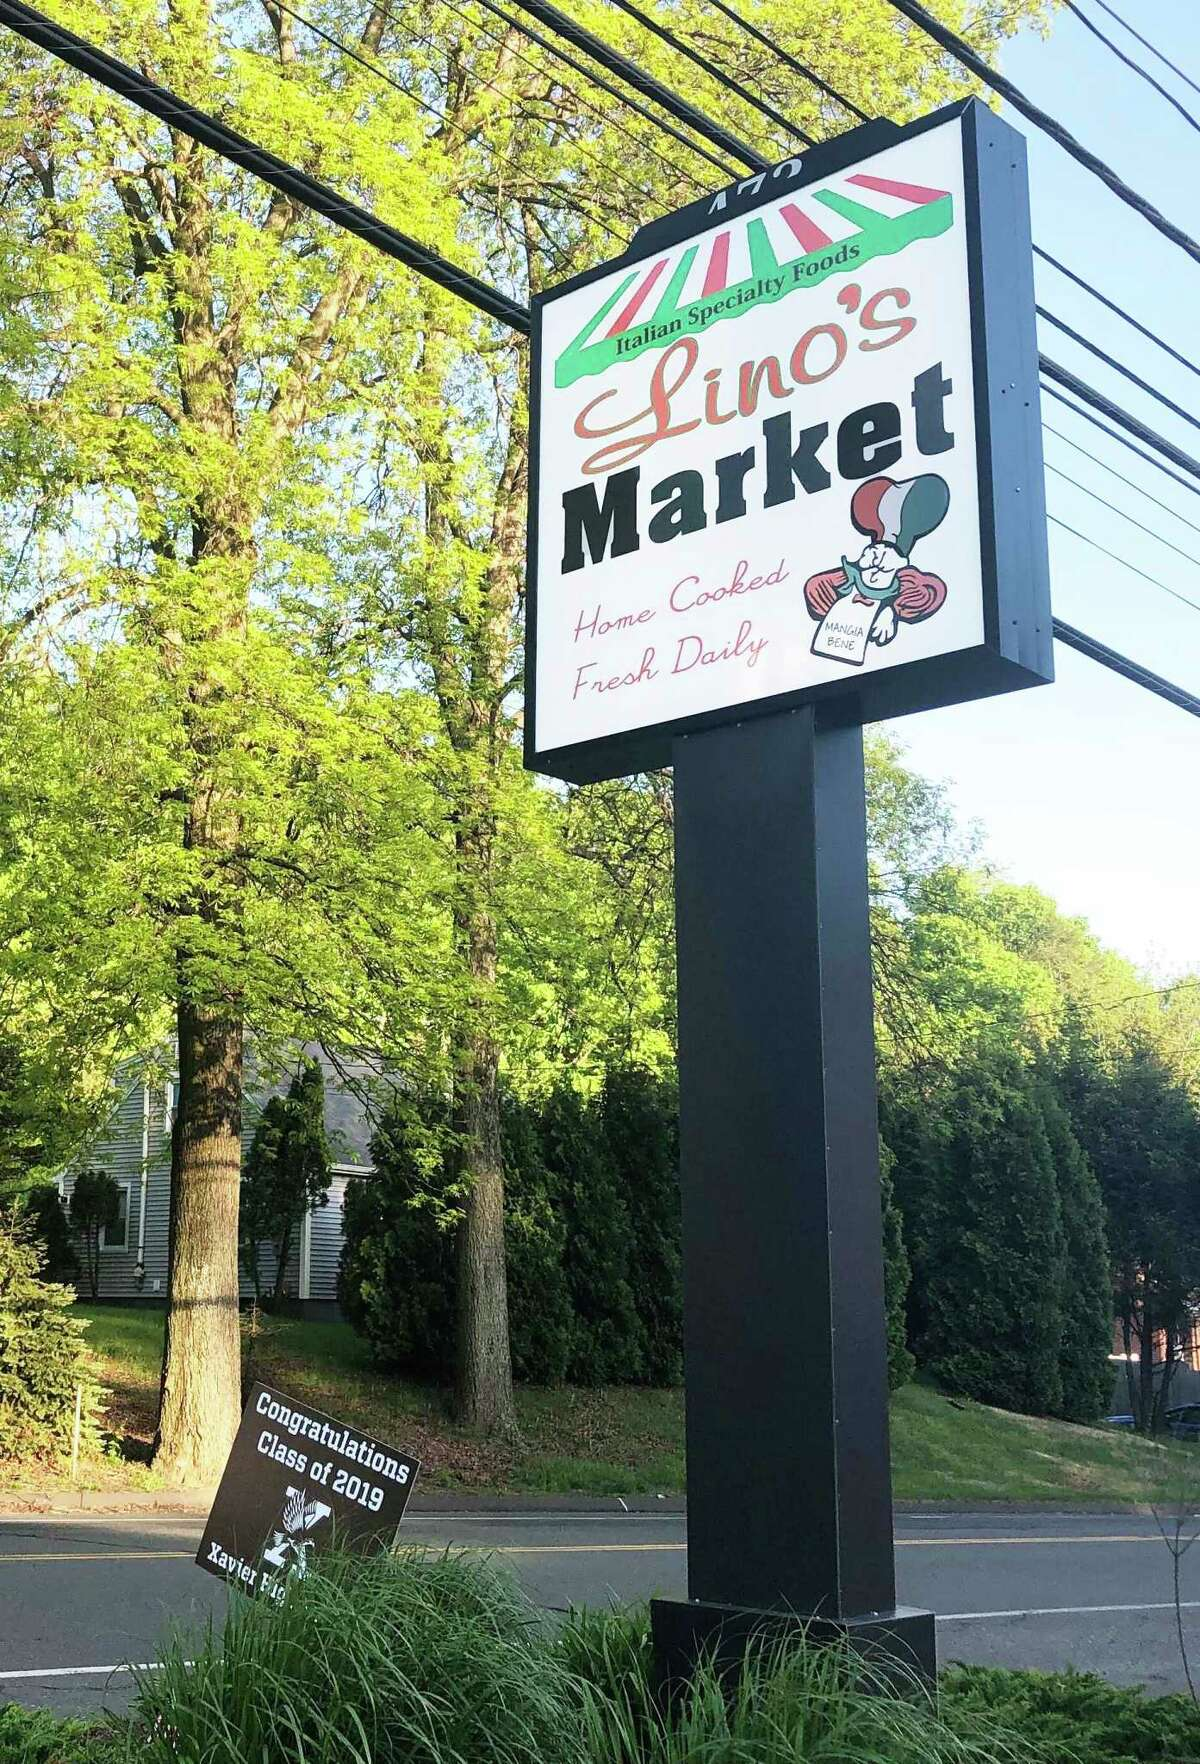 Lino's Market, 472 Main St., Durham, is one of two stores where volunteers are willing to pick up groceries for older residents and those with health issues during the Covid-19 outbreak.